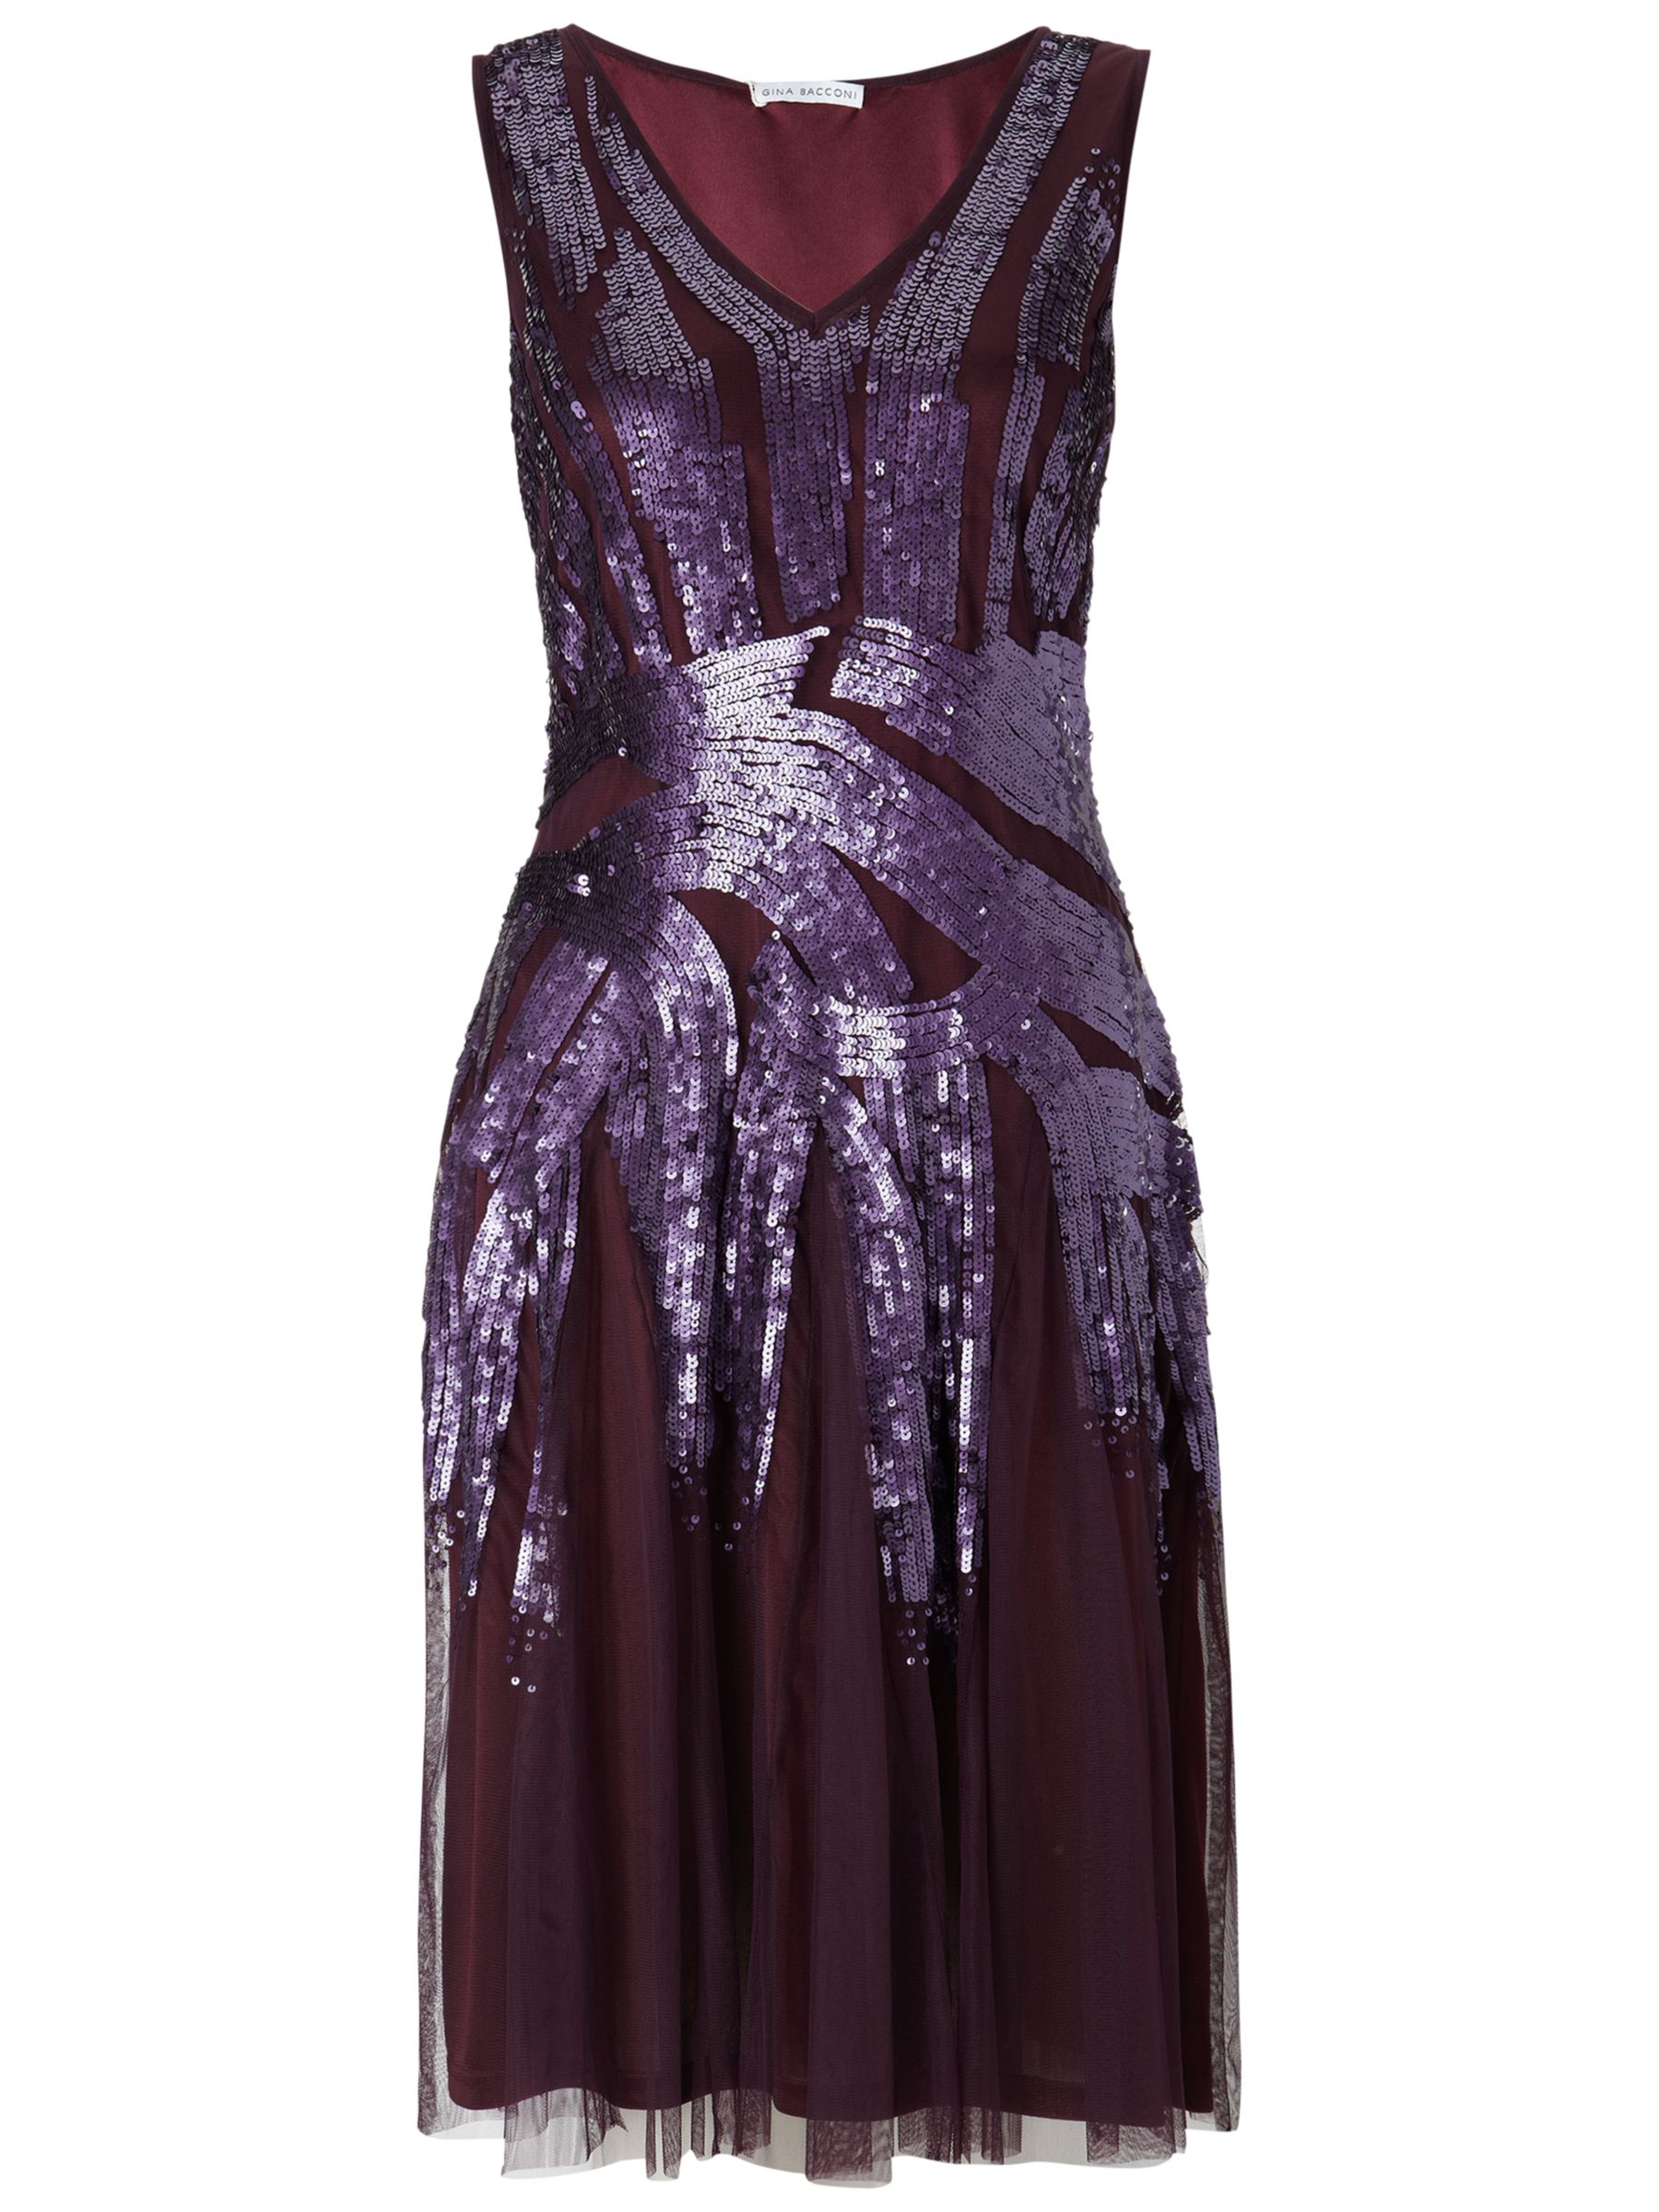 Gina Bacconi Beaded Dress, Plum